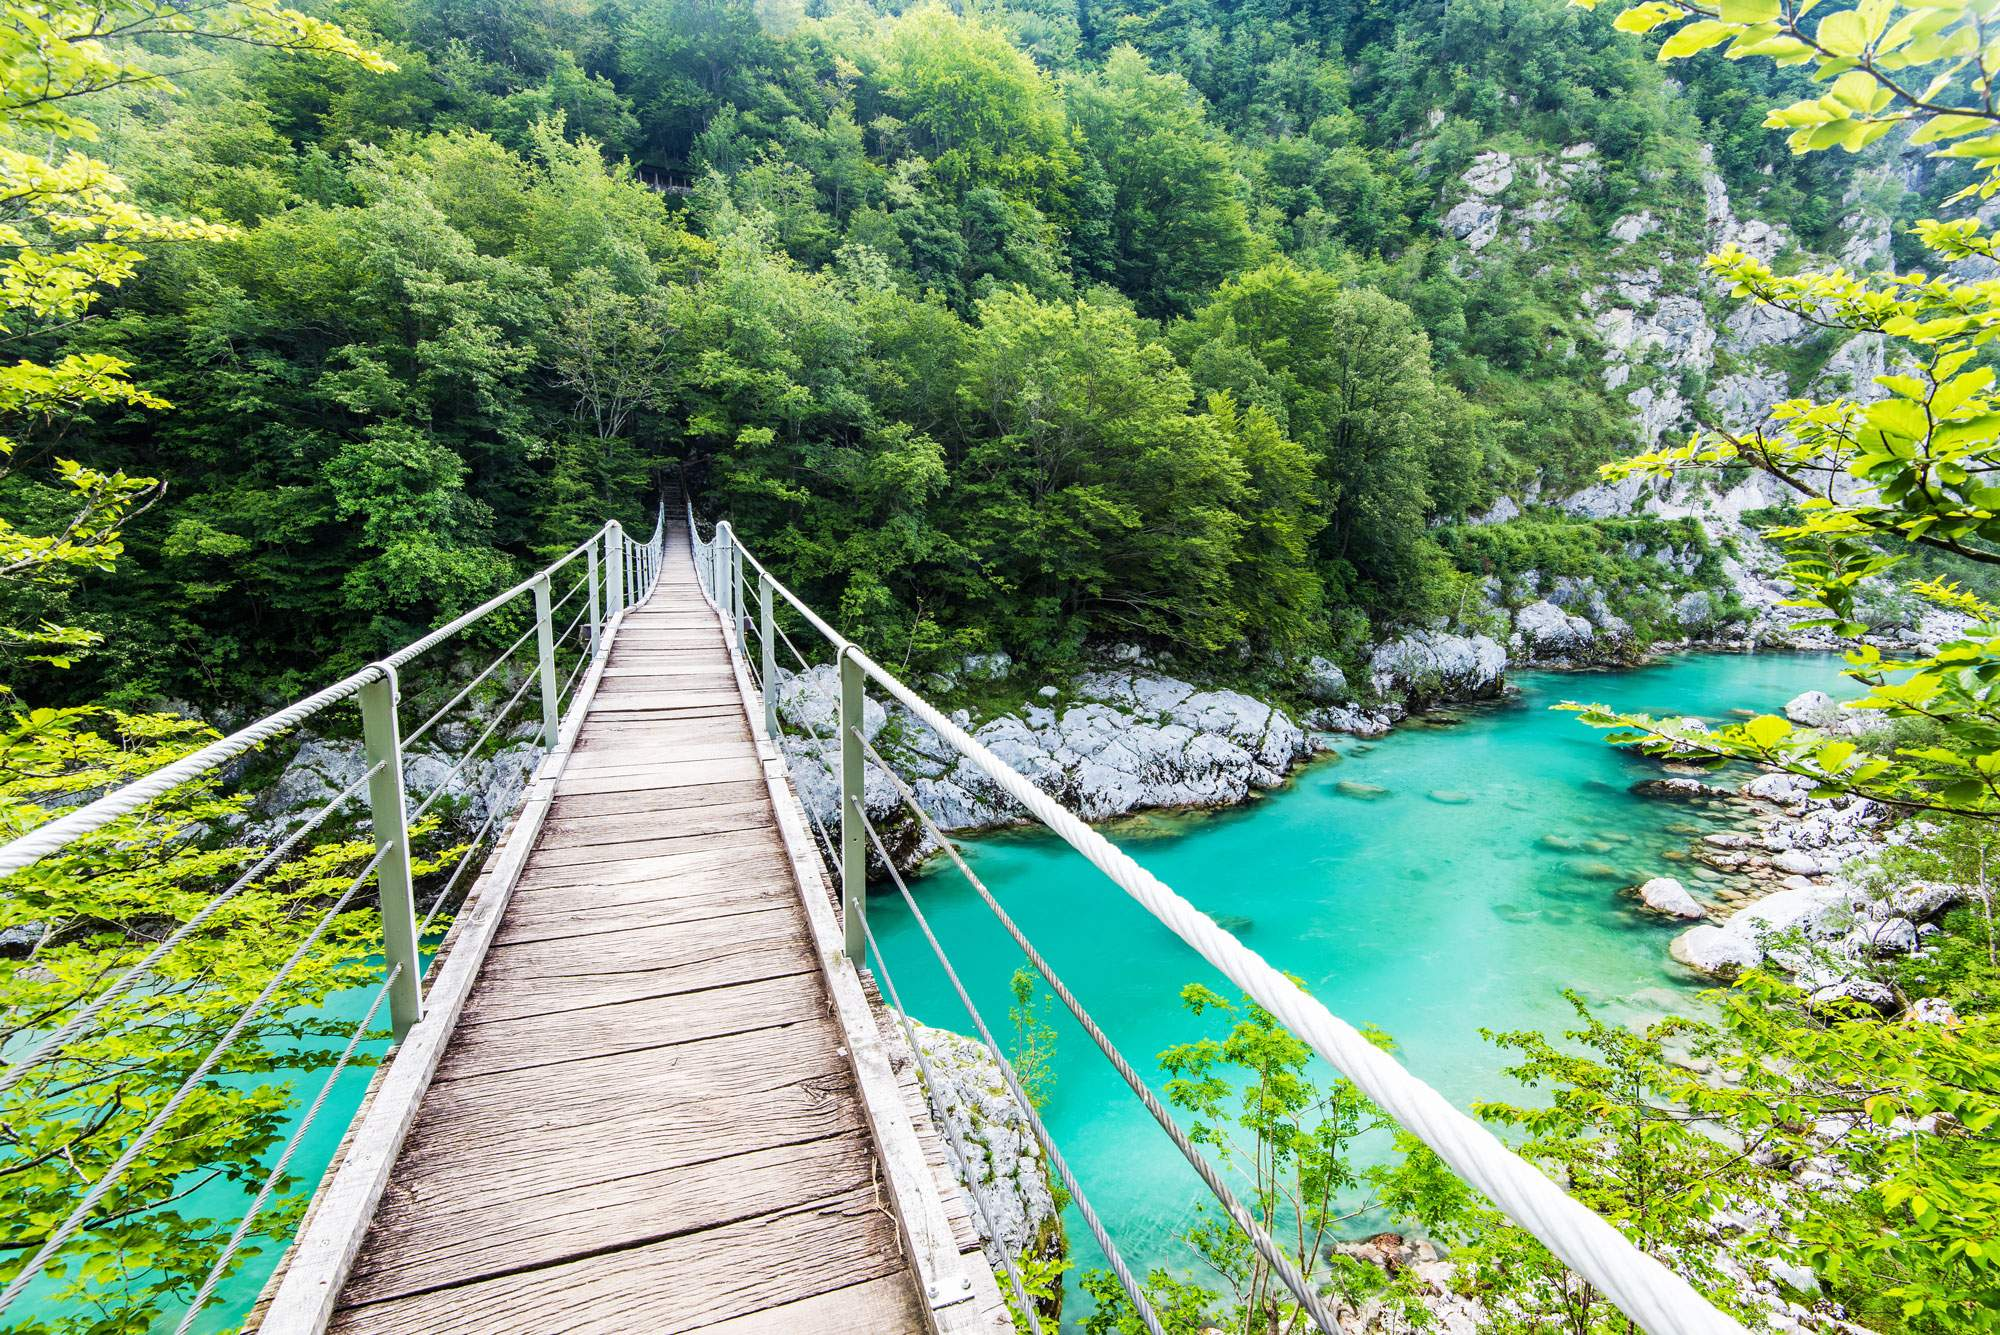 soca-river-slovenia-bled-hiking-trail